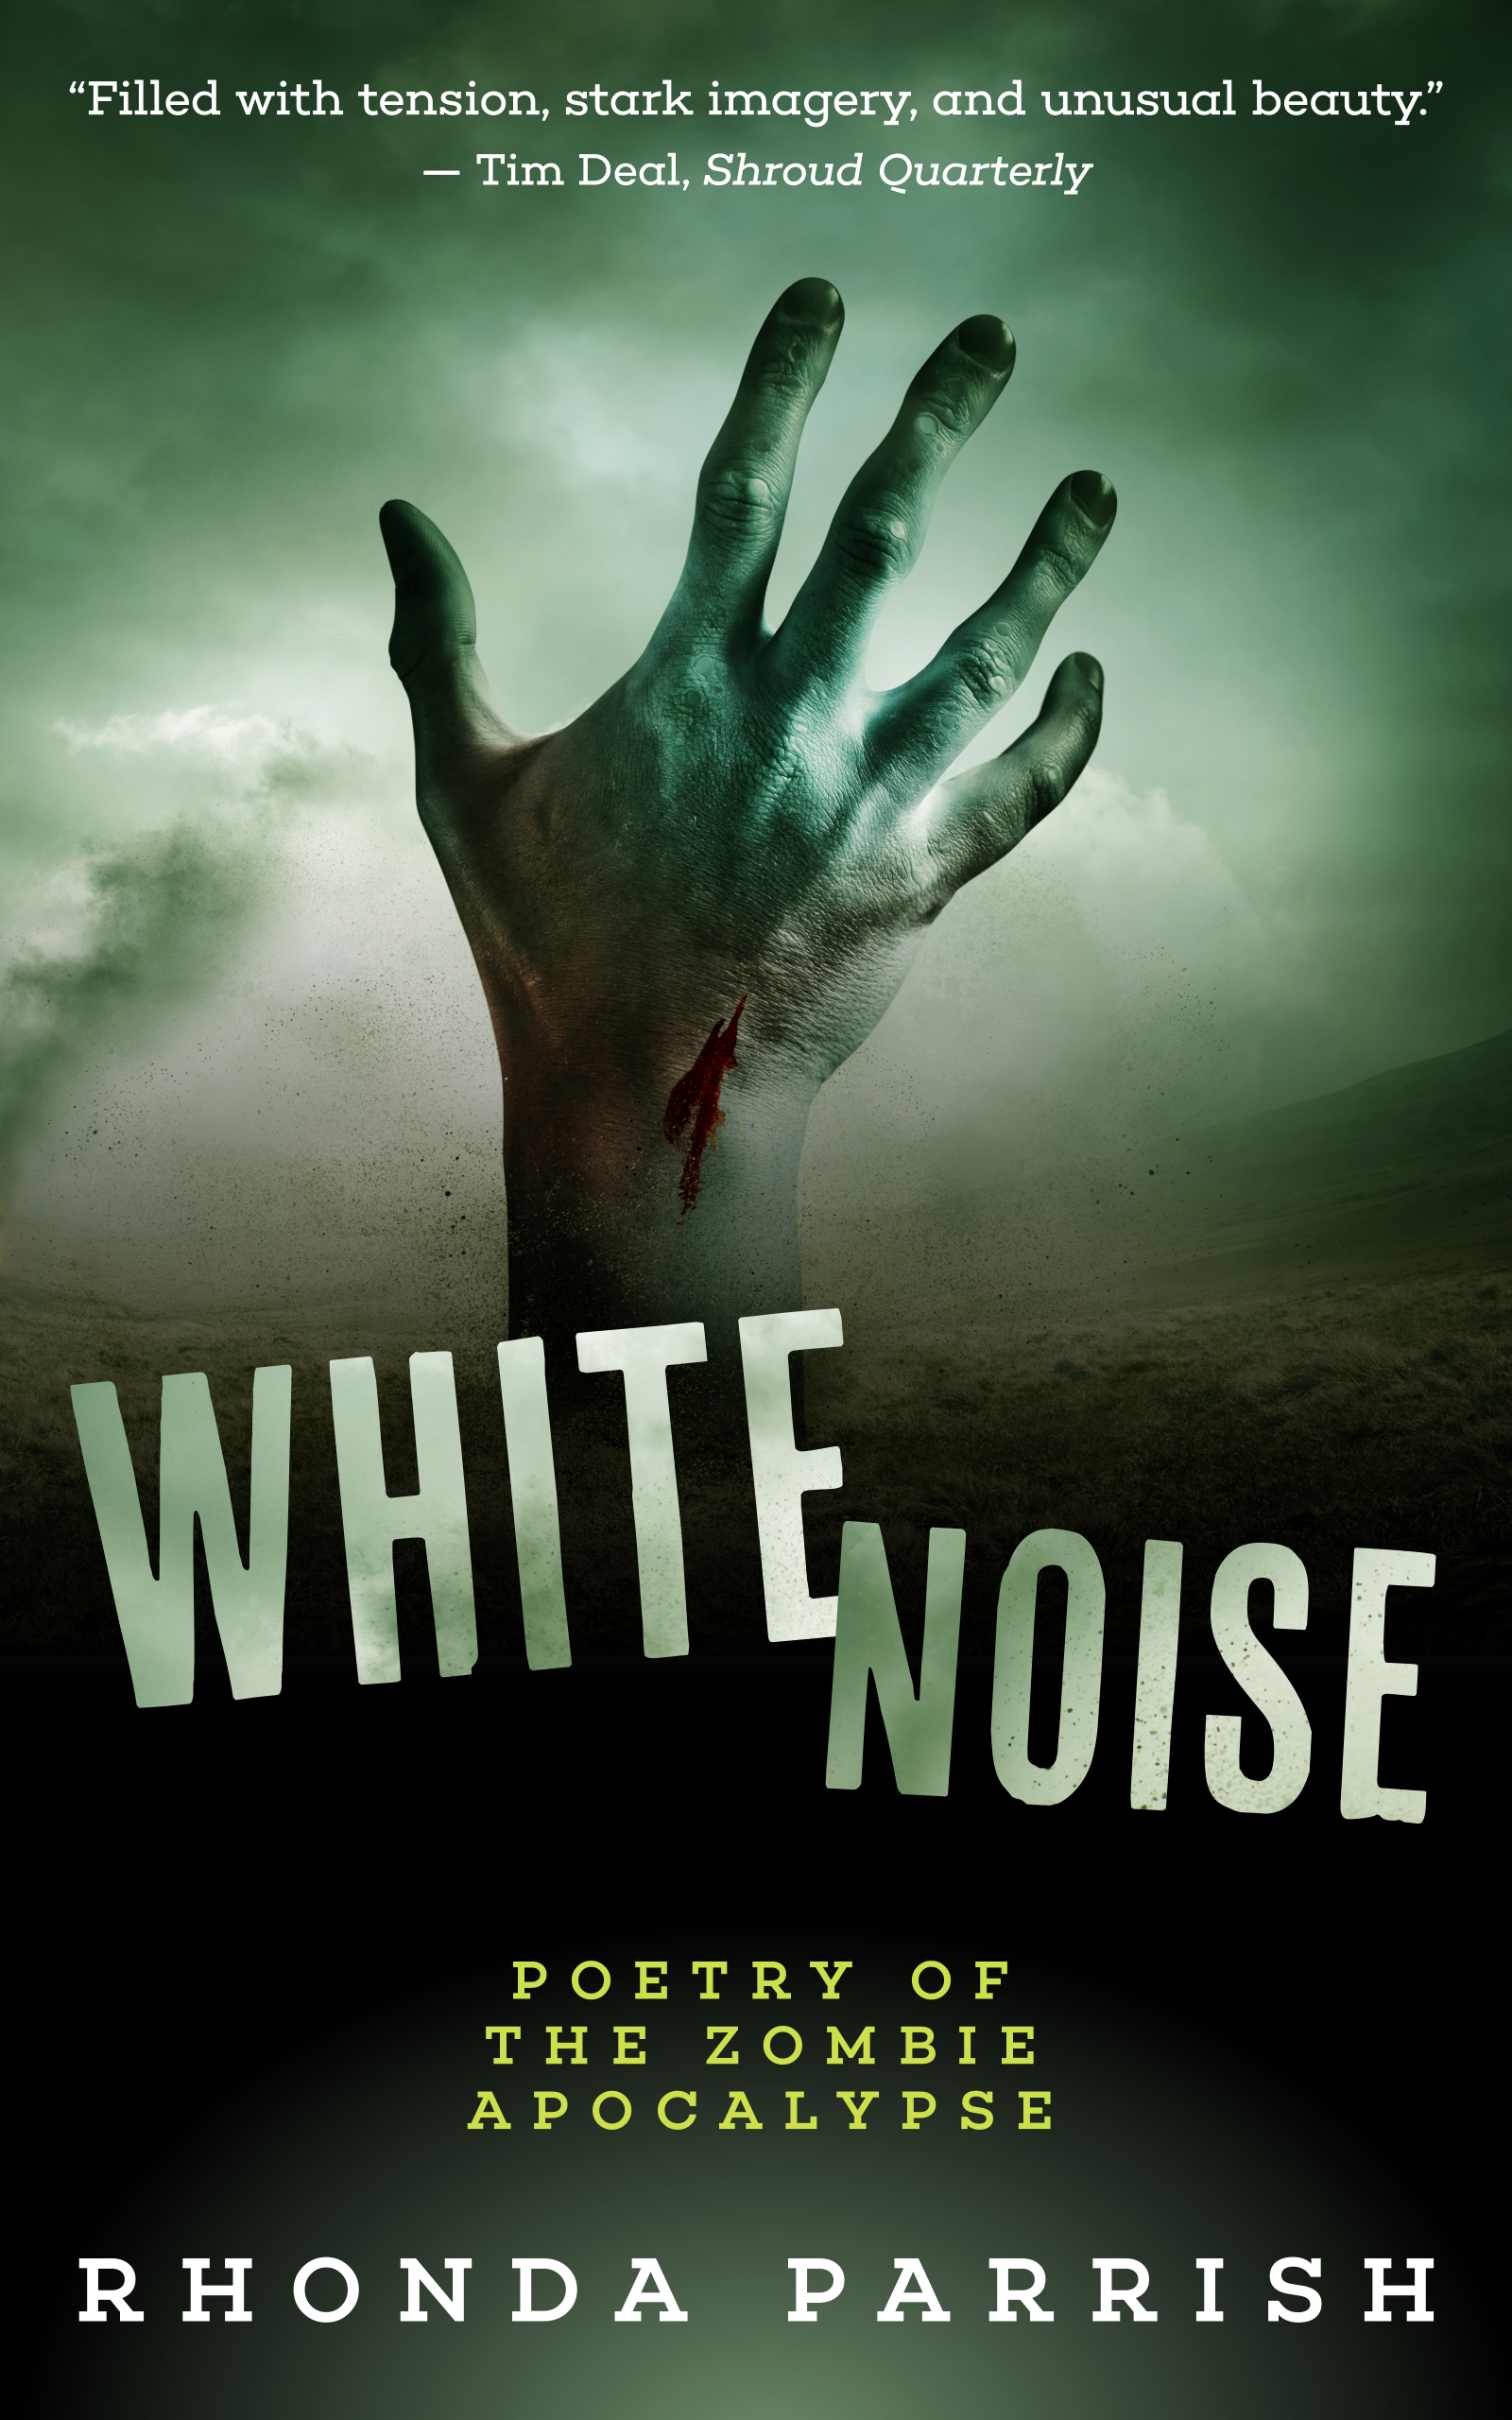 White Noise: Poetry of the Zombie Apocalypse